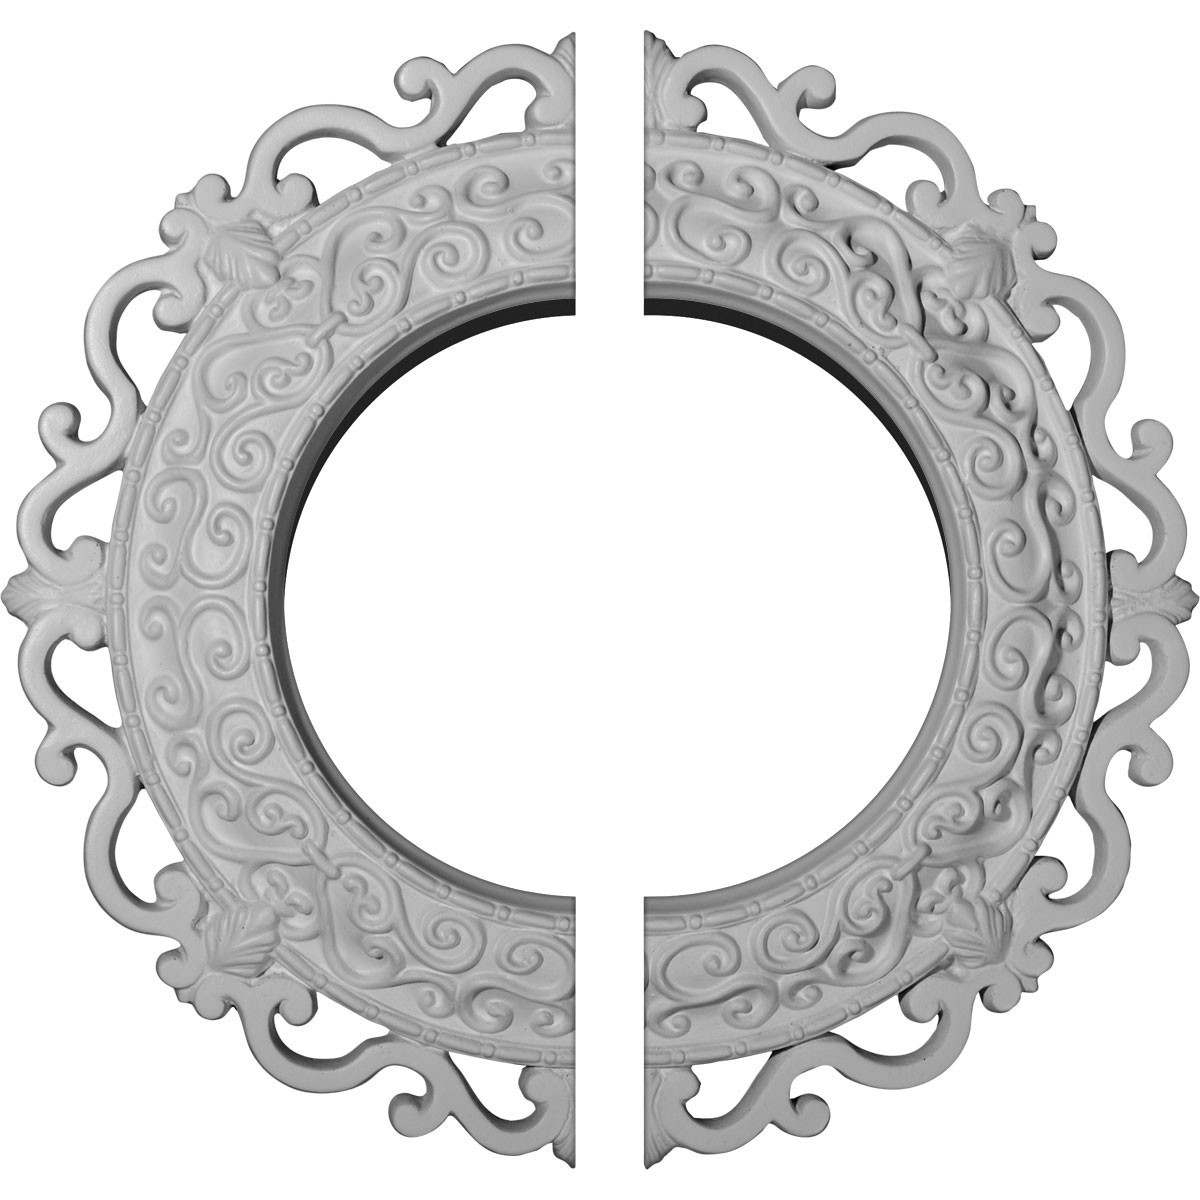 """EM-CM13OR2 - 13 1/4""""OD x 6 5/8""""ID x 1 1/8""""P Orrington Ceiling Medallion, Two Piece (Fits Canopies up to 6 5/8"""")"""